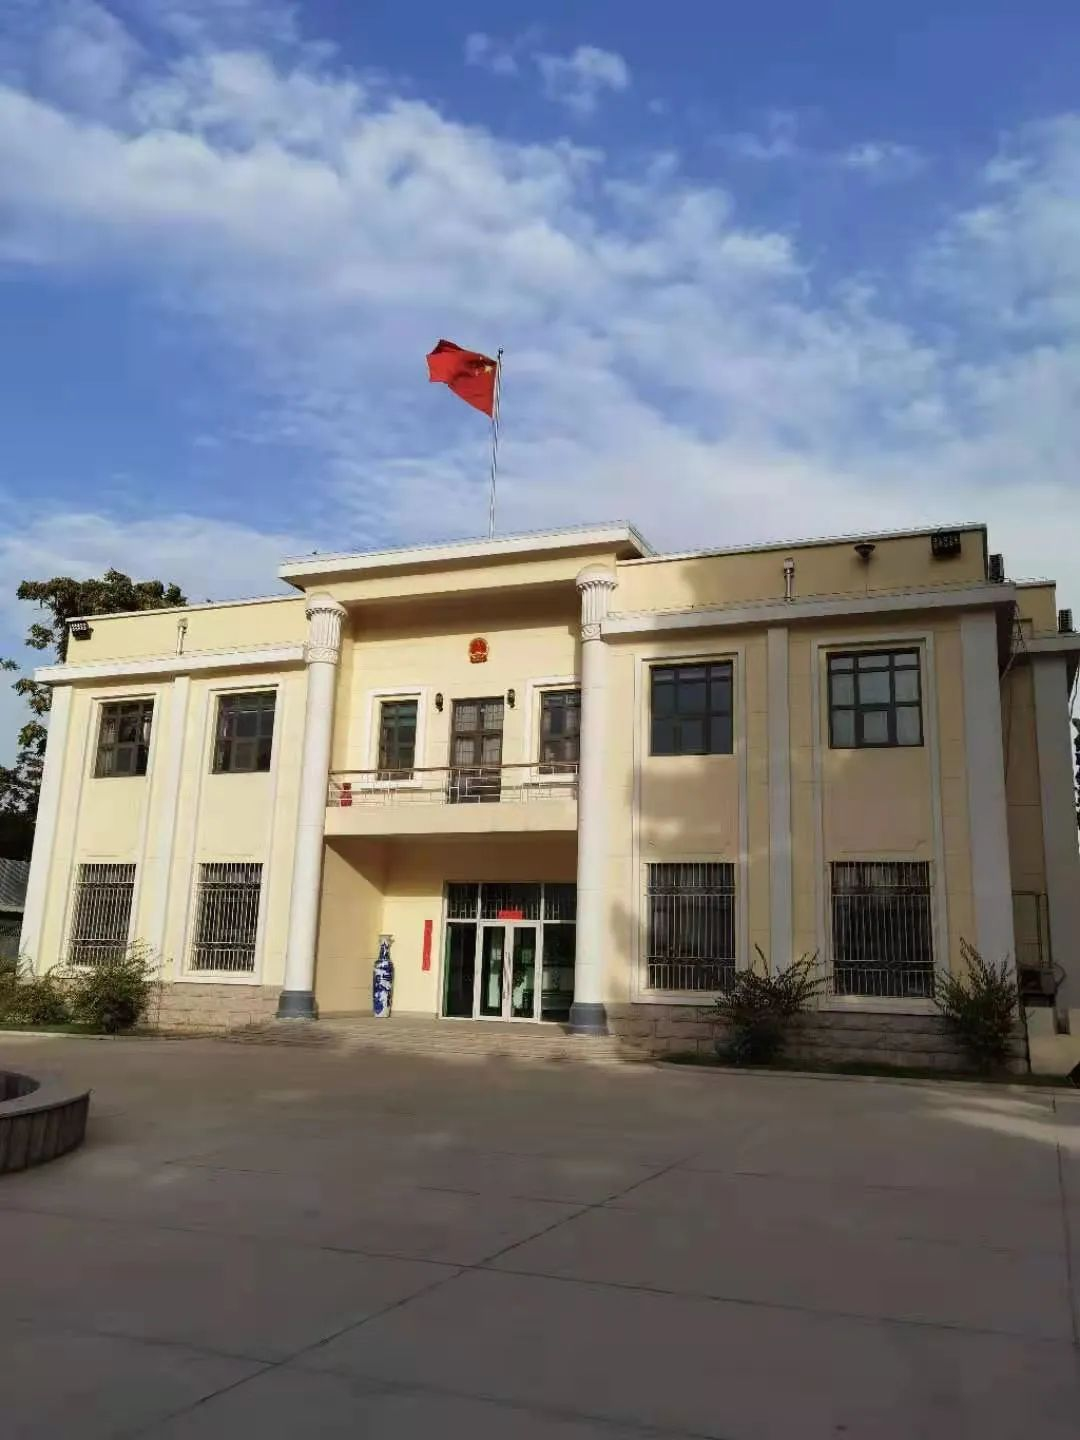 Photo of the Chinese national flag waving in front of building of the Chinese embassy in Afghanistan. Photo: Wang Yu, Chinese ambassador to Afghanistan